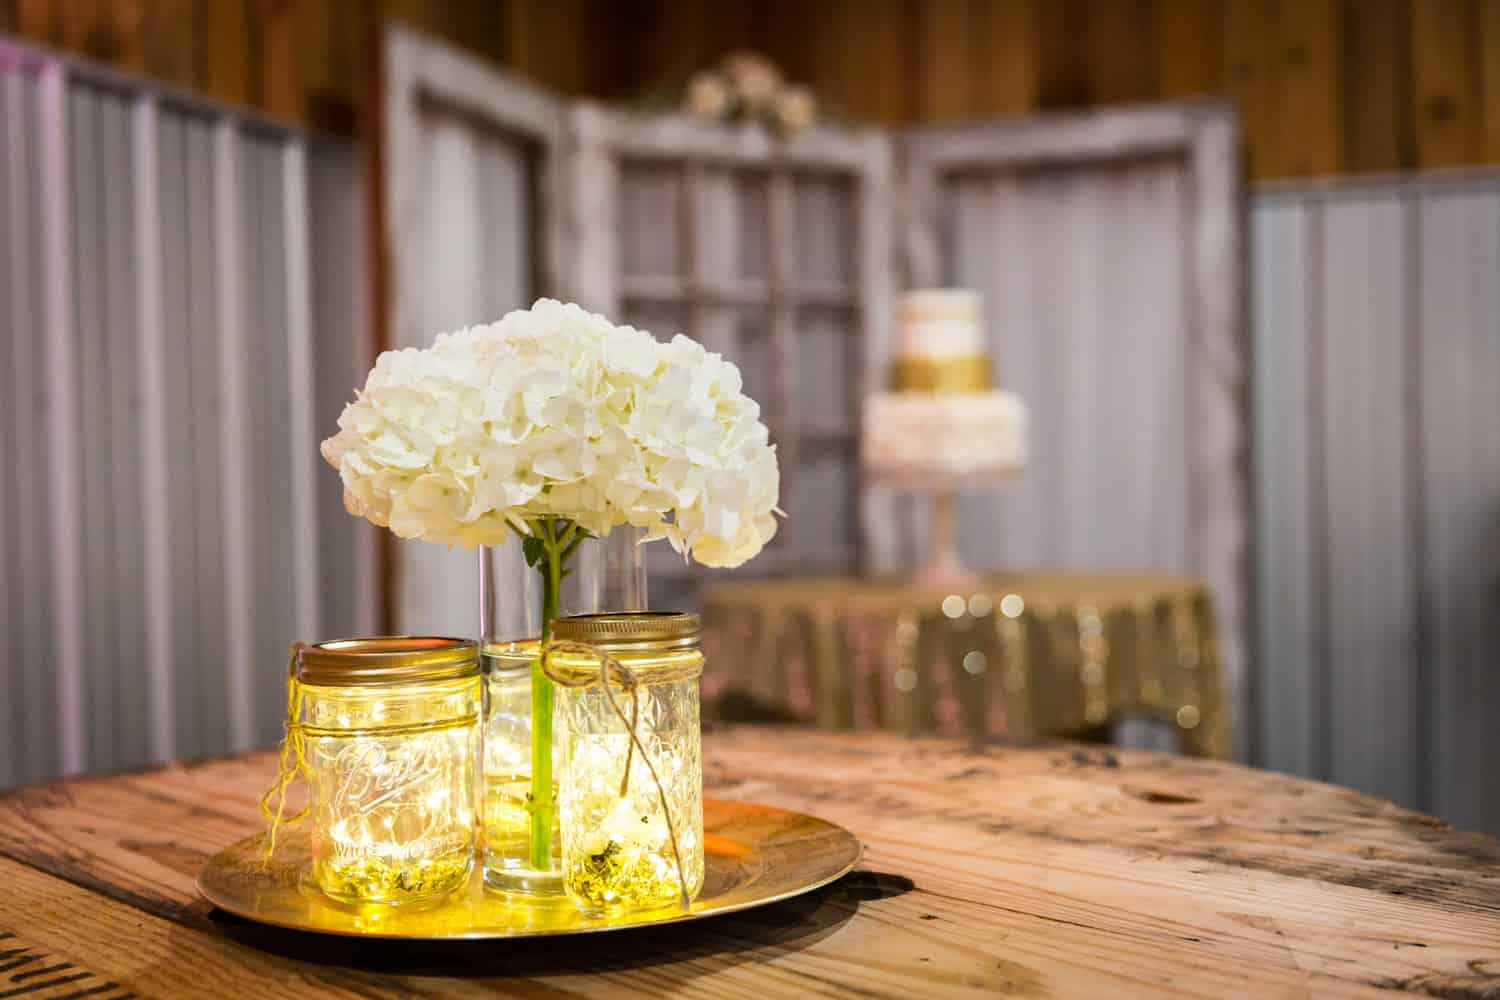 Tray of mason jars filled with fairy lights and vase of white hydrangeas